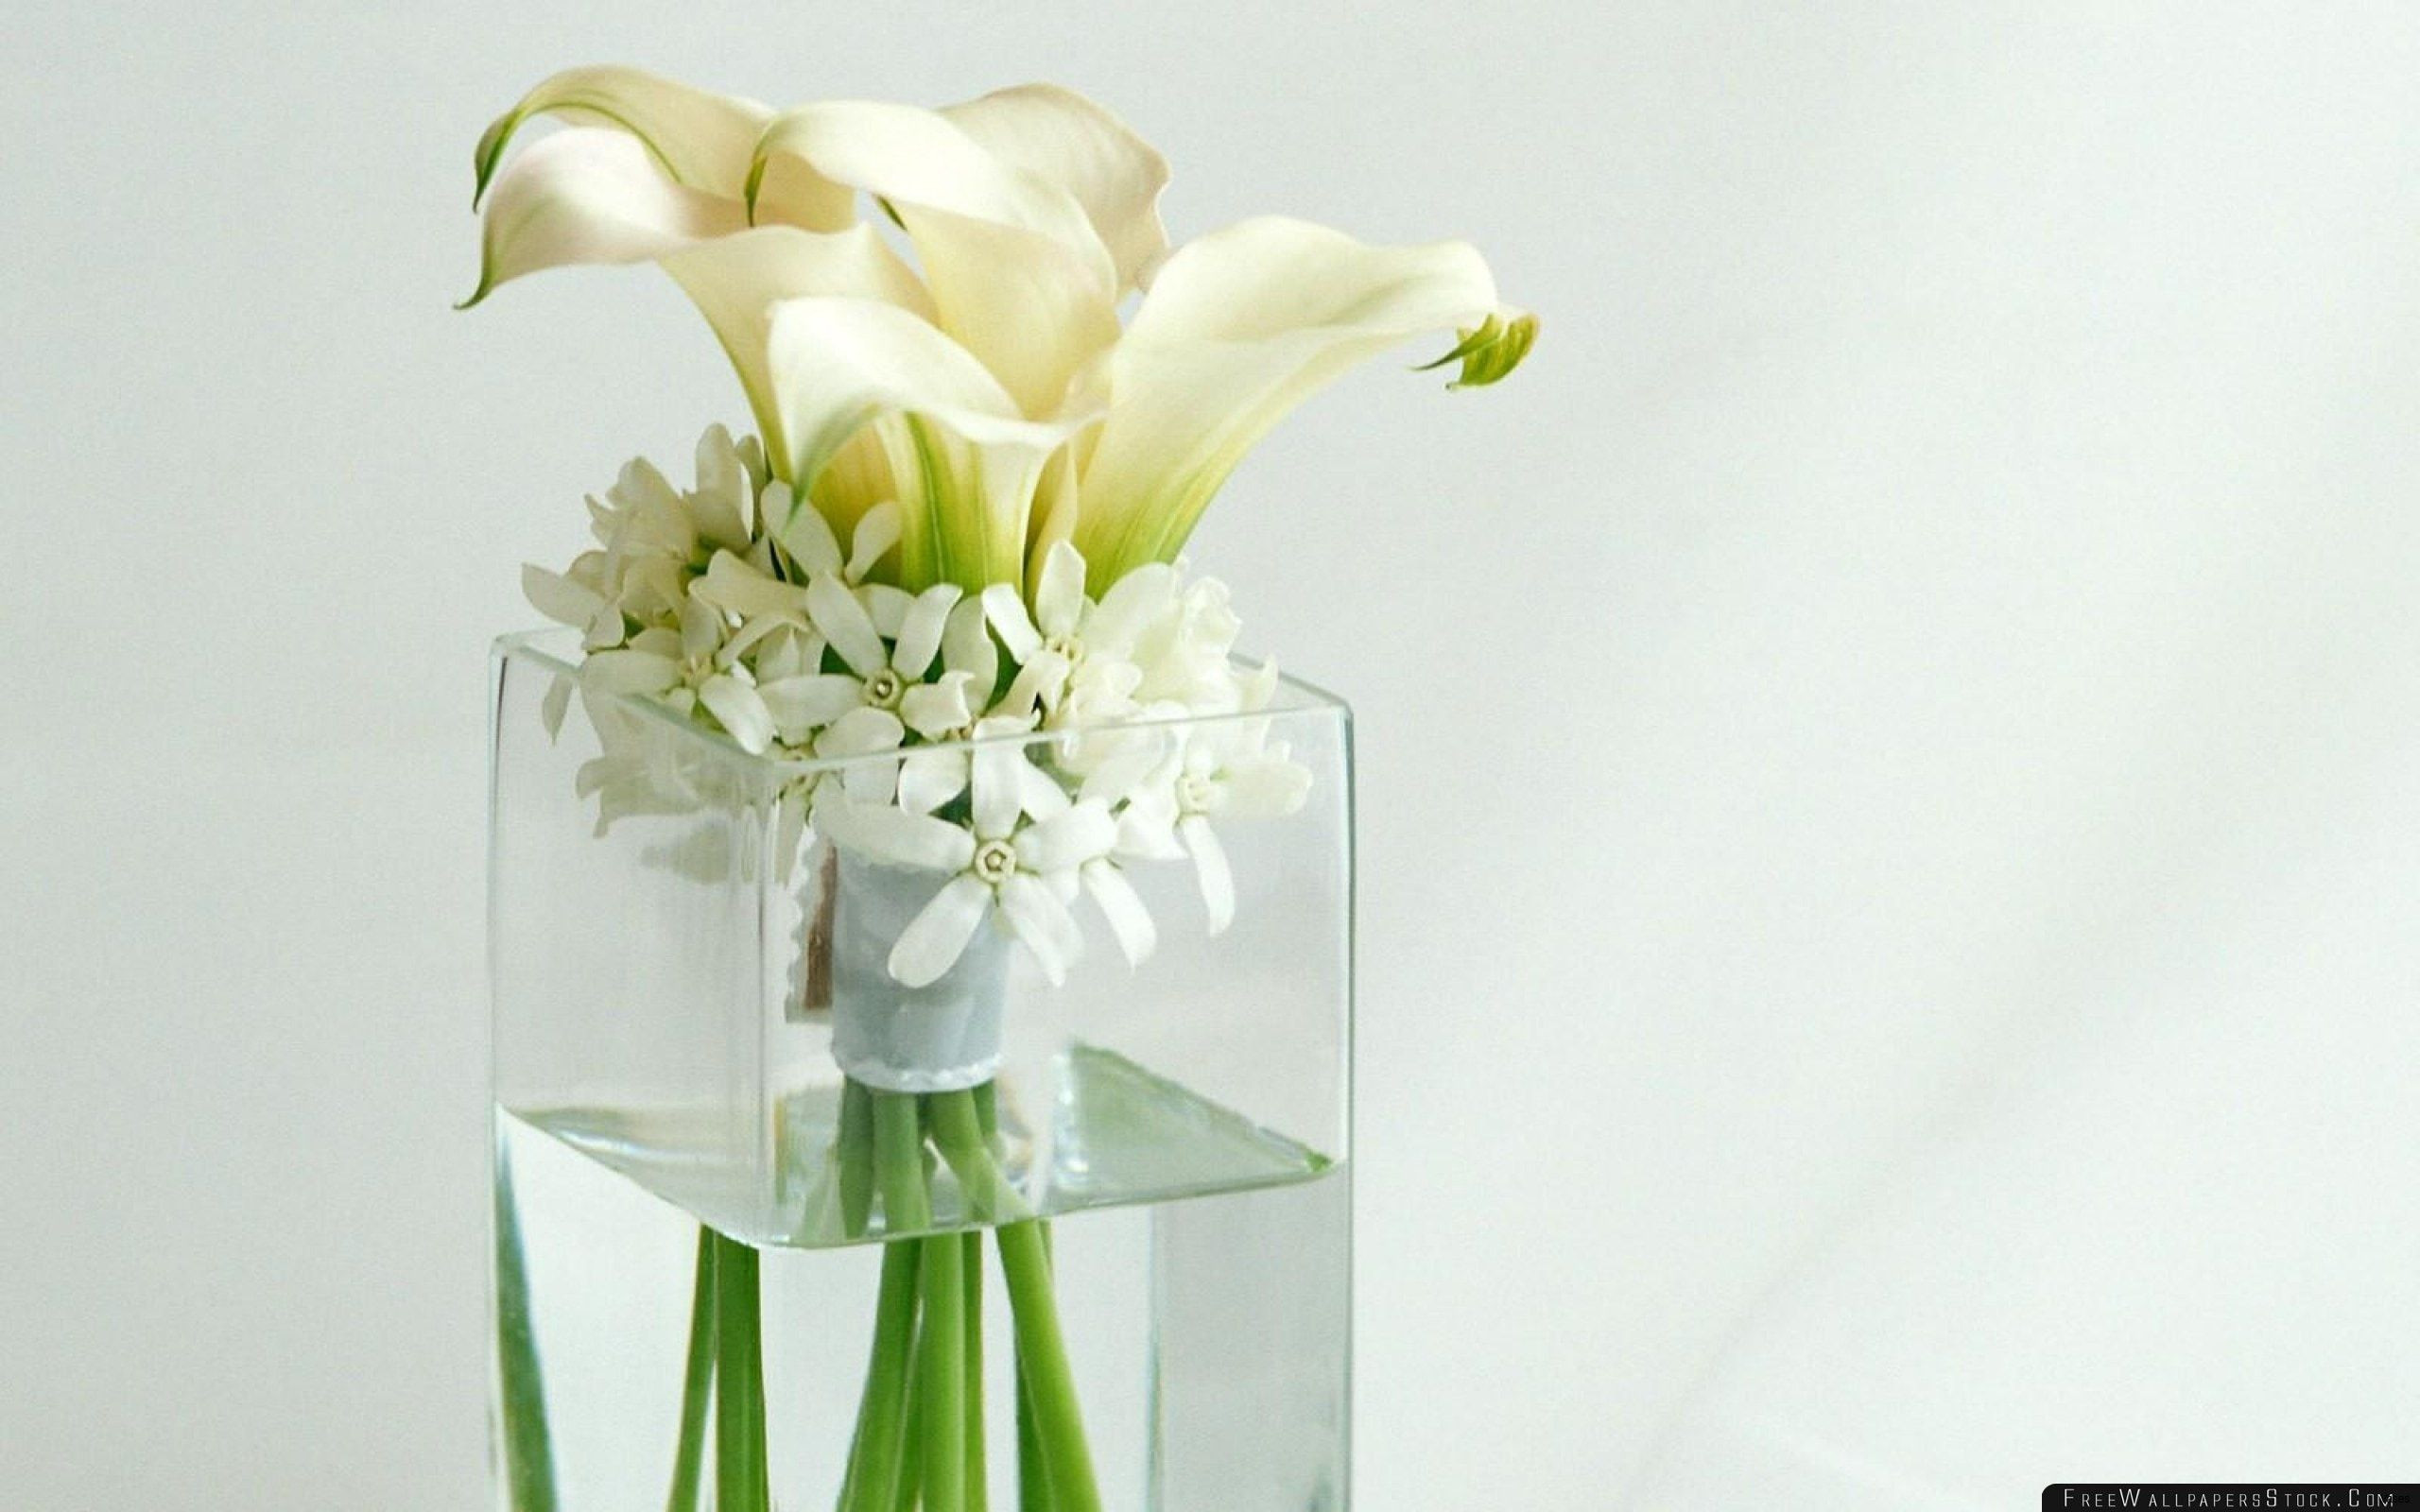 large vase floral arrangements of flowers in glass vase new tall vase centerpiece ideas vases flowers throughout flowers in glass vase new tall vase centerpiece ideas vases flowers in water 0d artificial